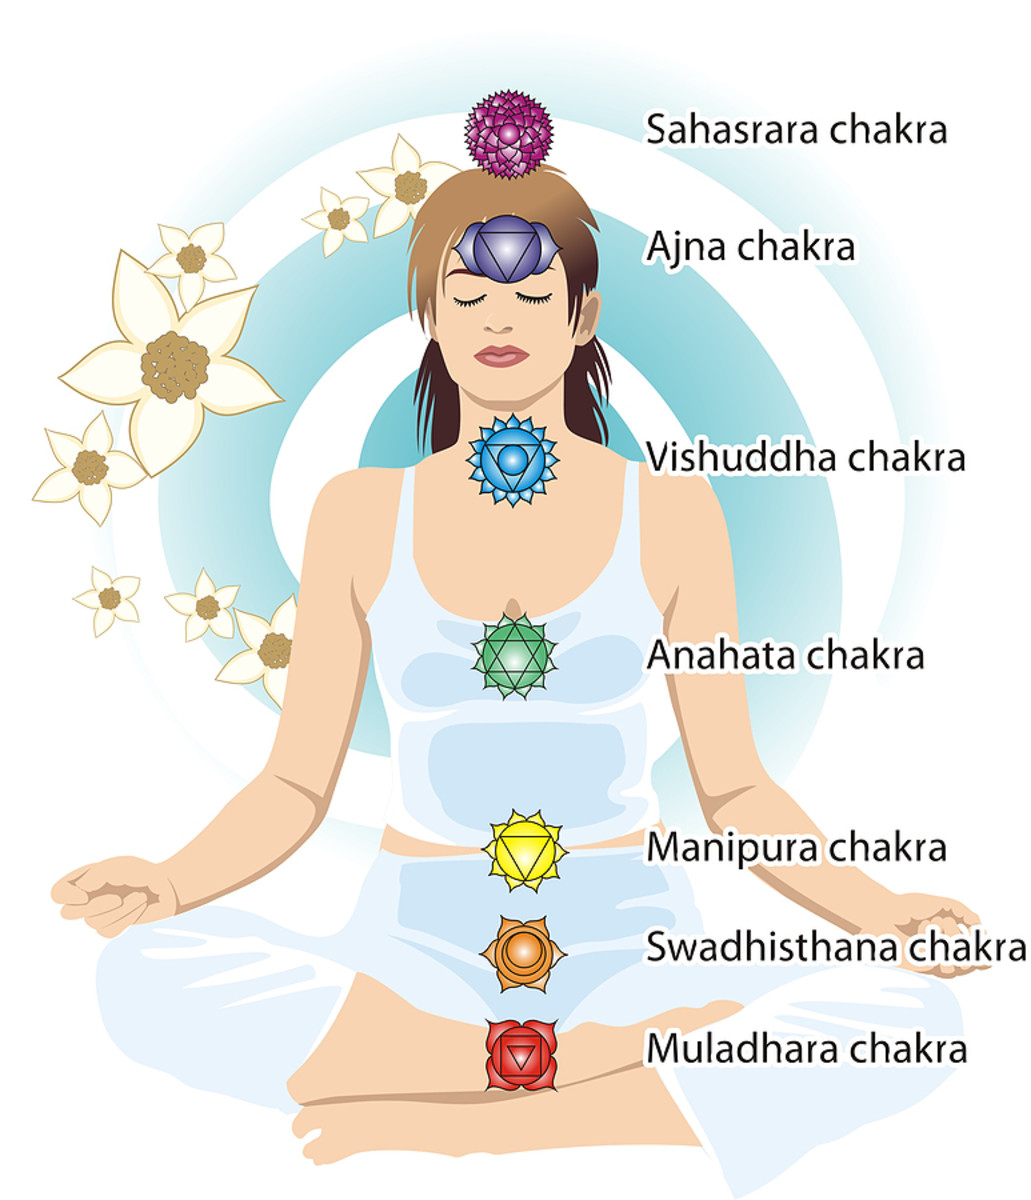 The seven chakras of the human body.